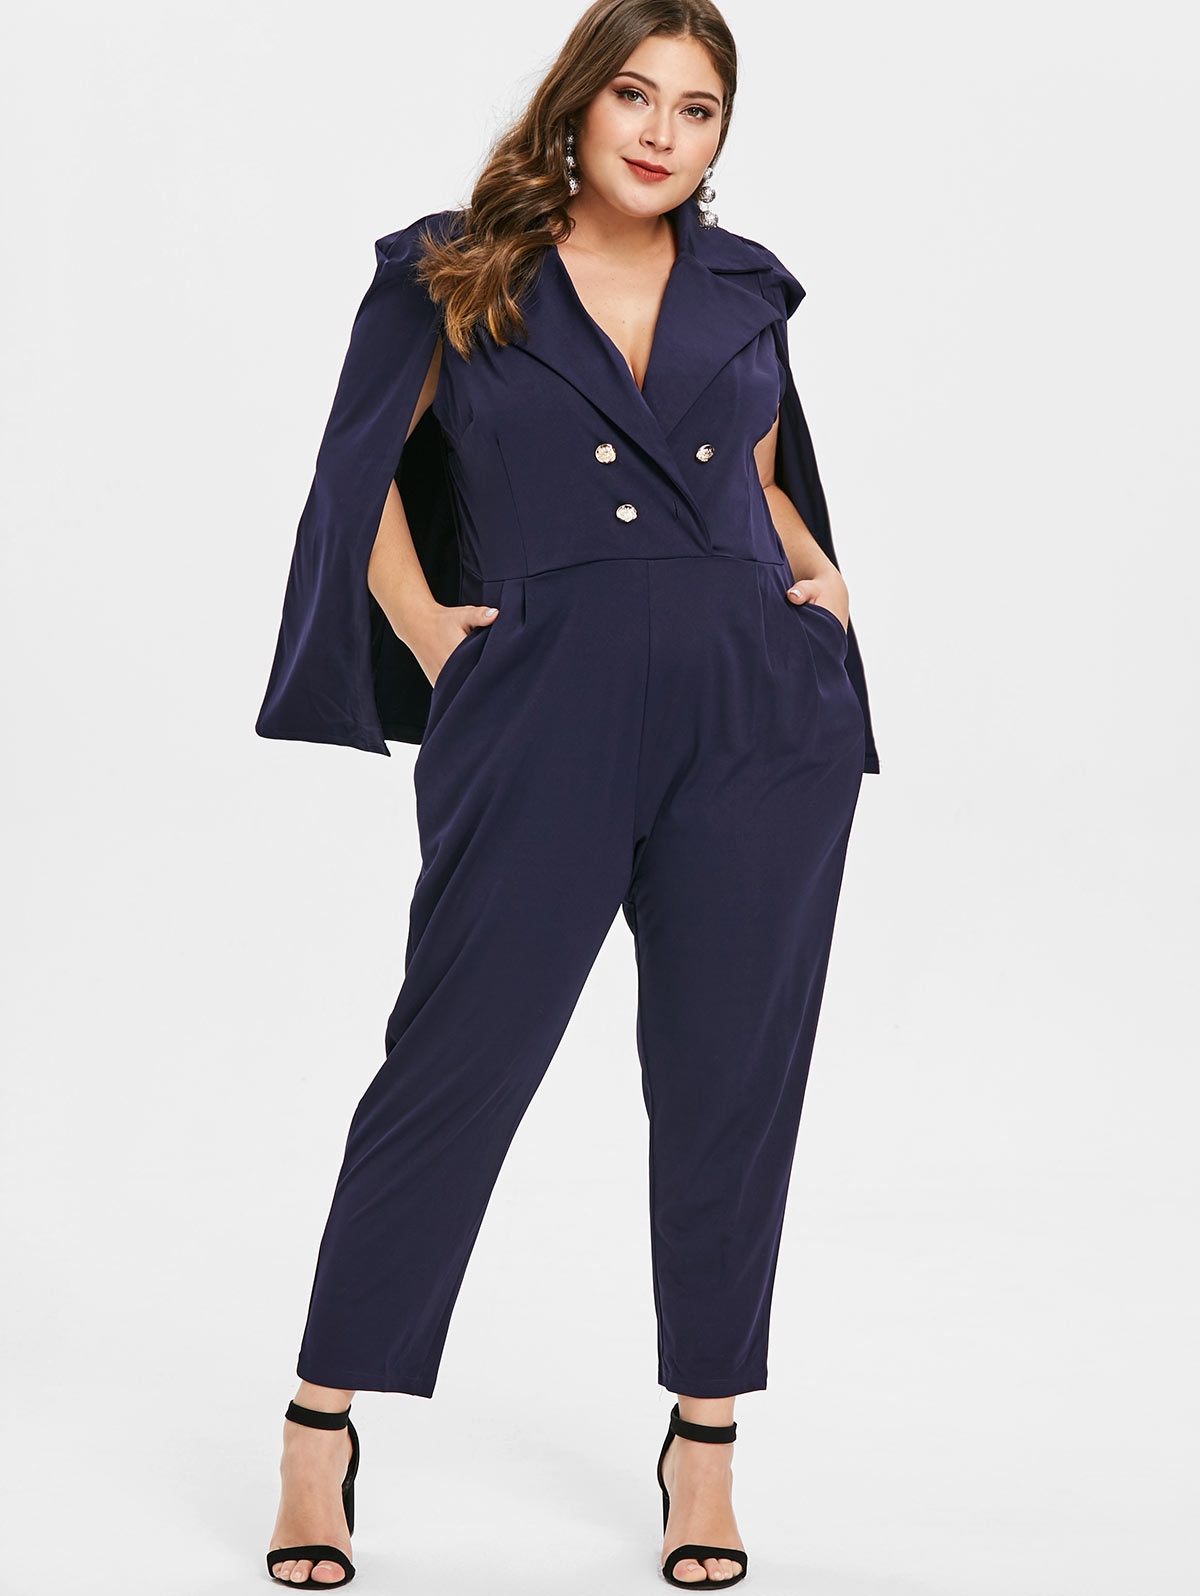 Wipalo Women Plus Size Double Breasted Cape Jumpsuit Plunging Neck Solid OL Jumpsuit Casual Spring Ladies 4XL Big Size Rompers